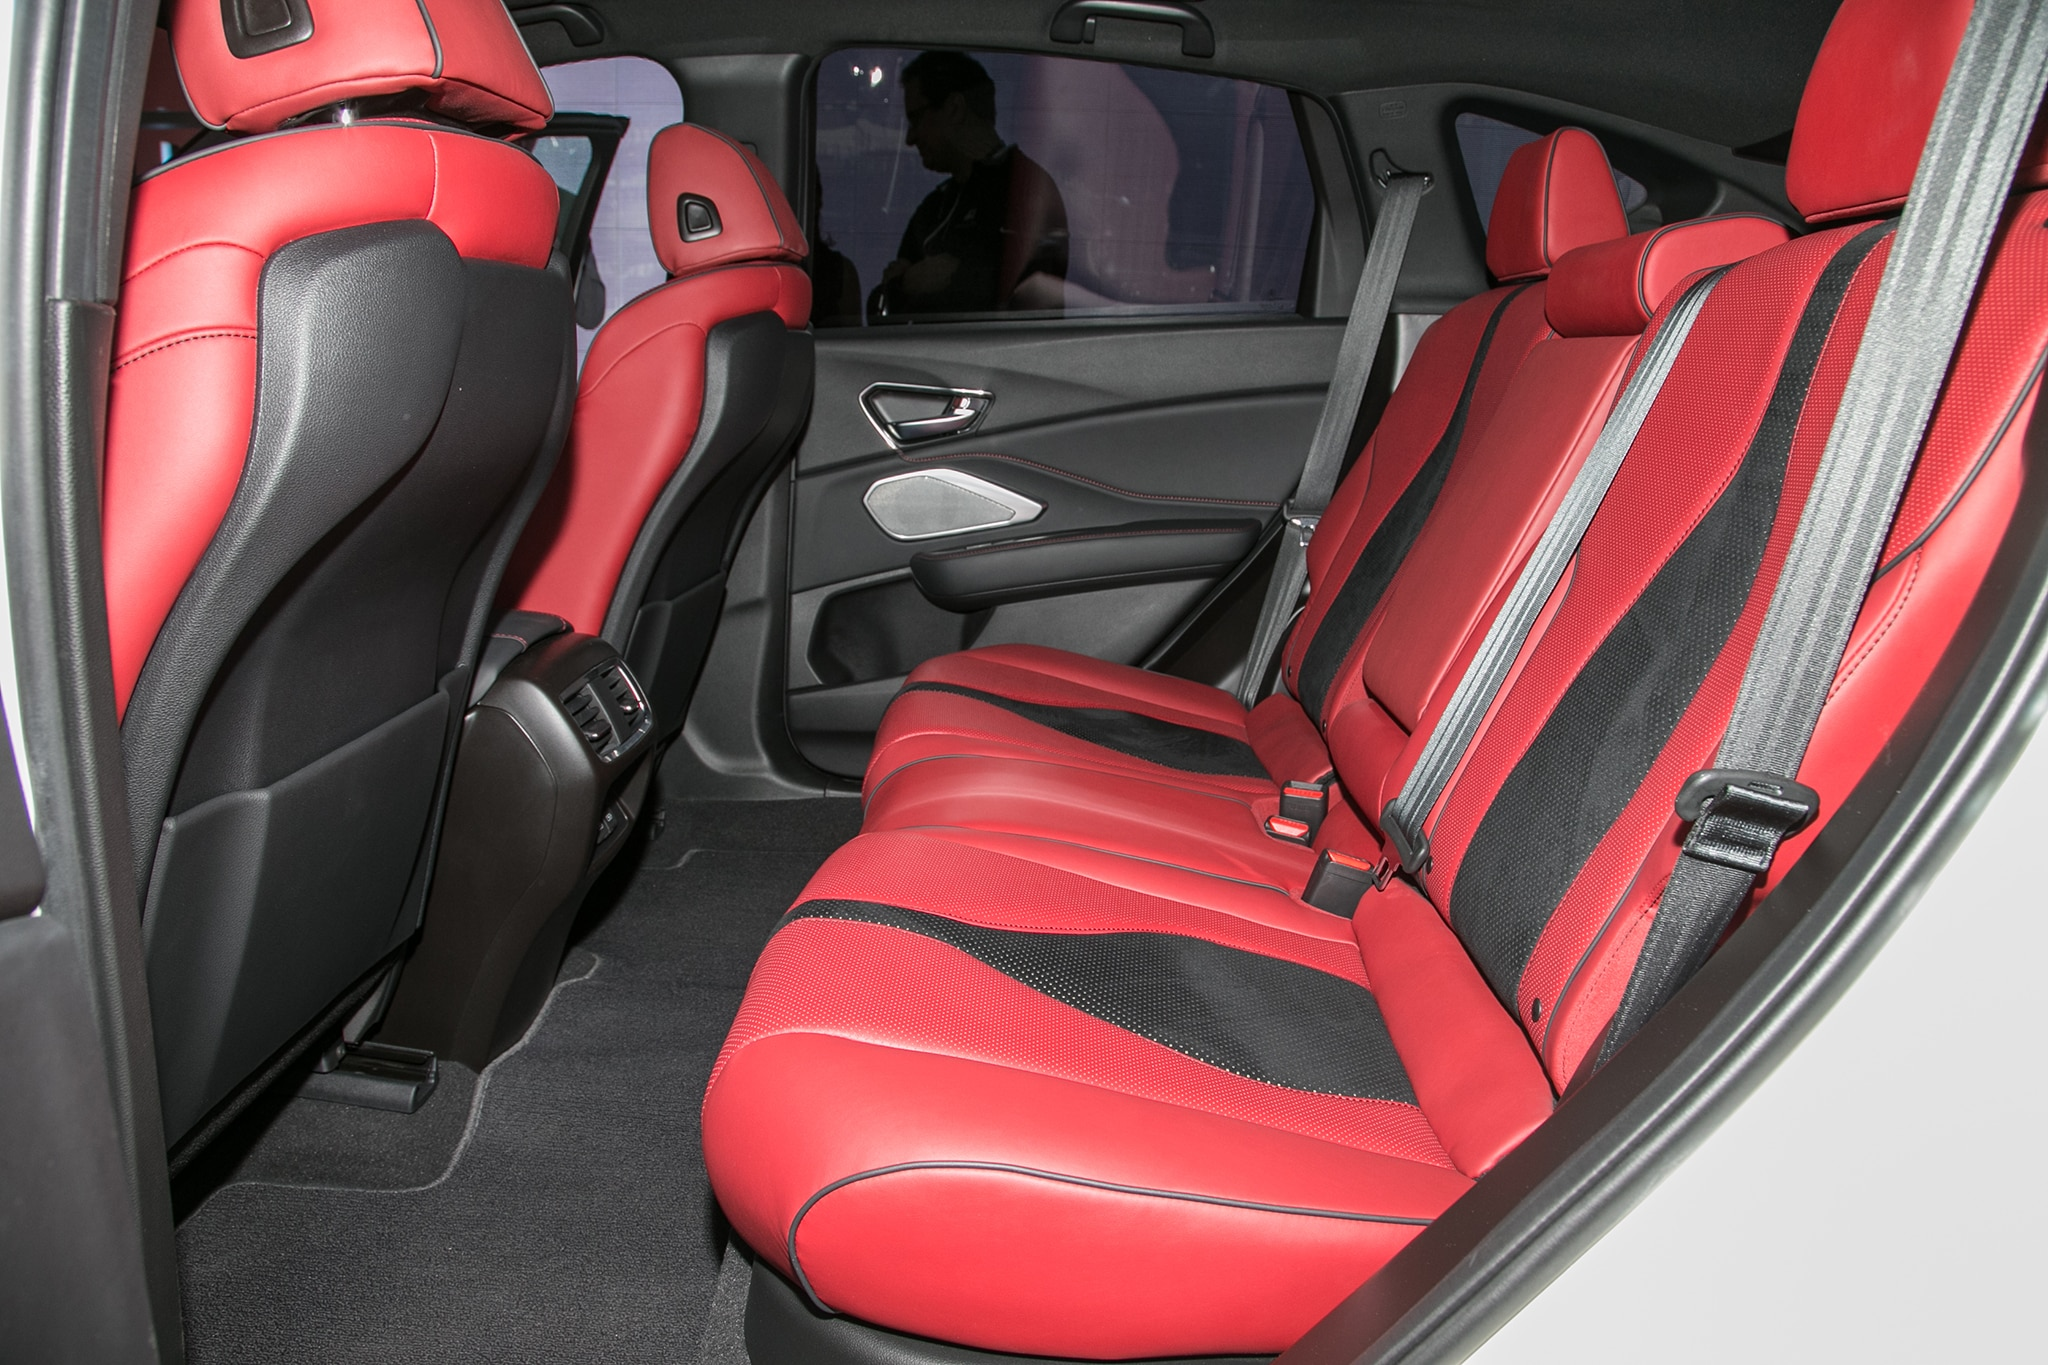 How To Assemble A Car Seat